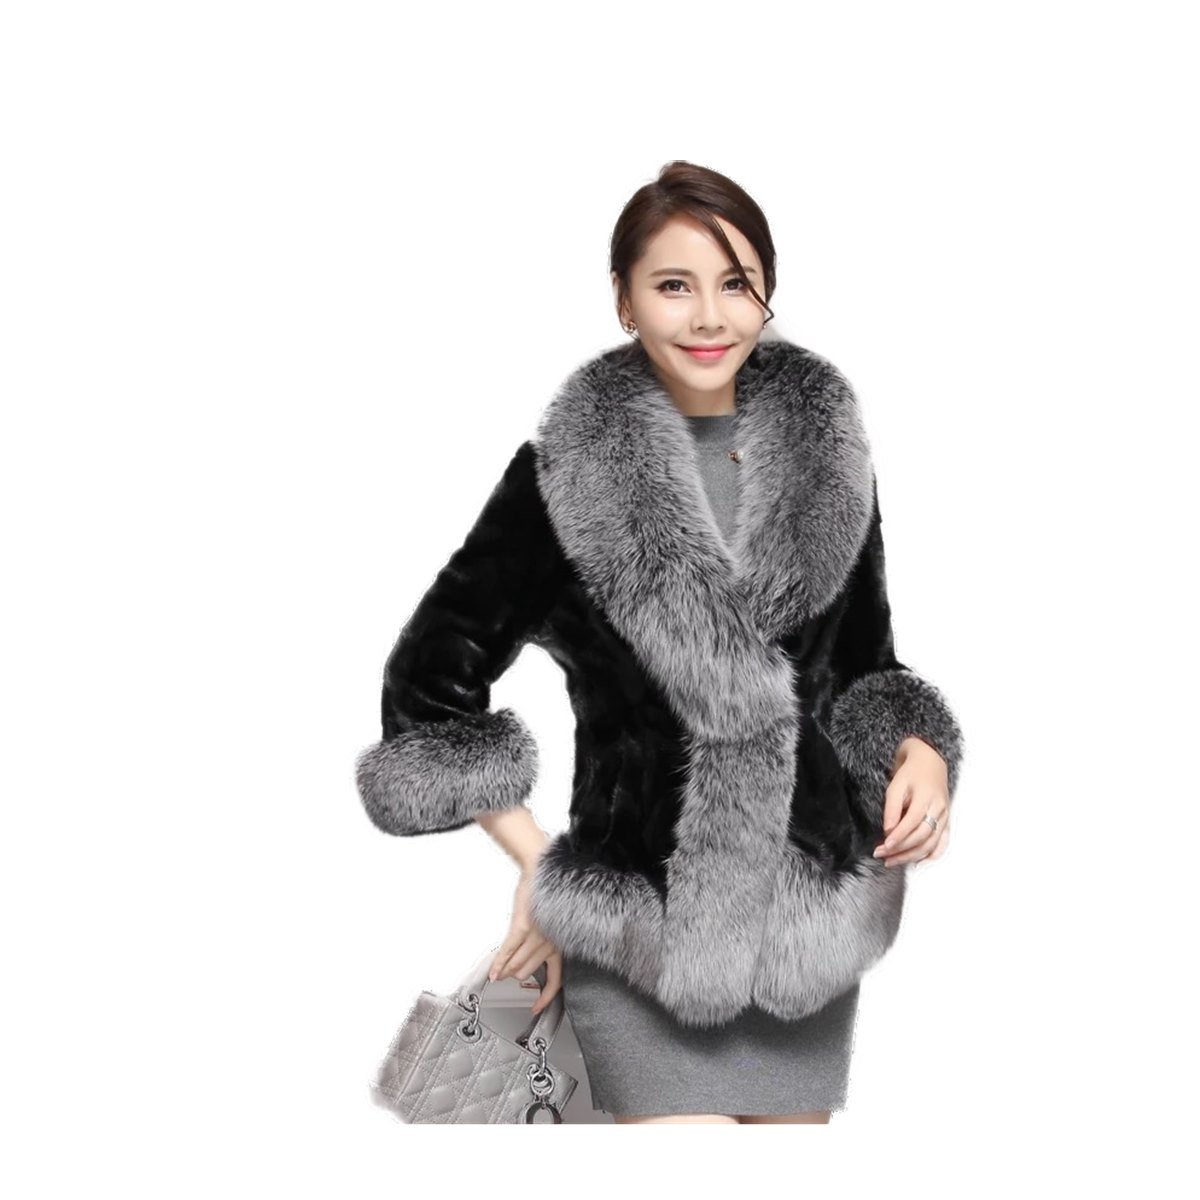 Womens Black Real Mink Fur Jacket Silver Fox Fur Collar Sheared Mink Jacket (XL, Silver)